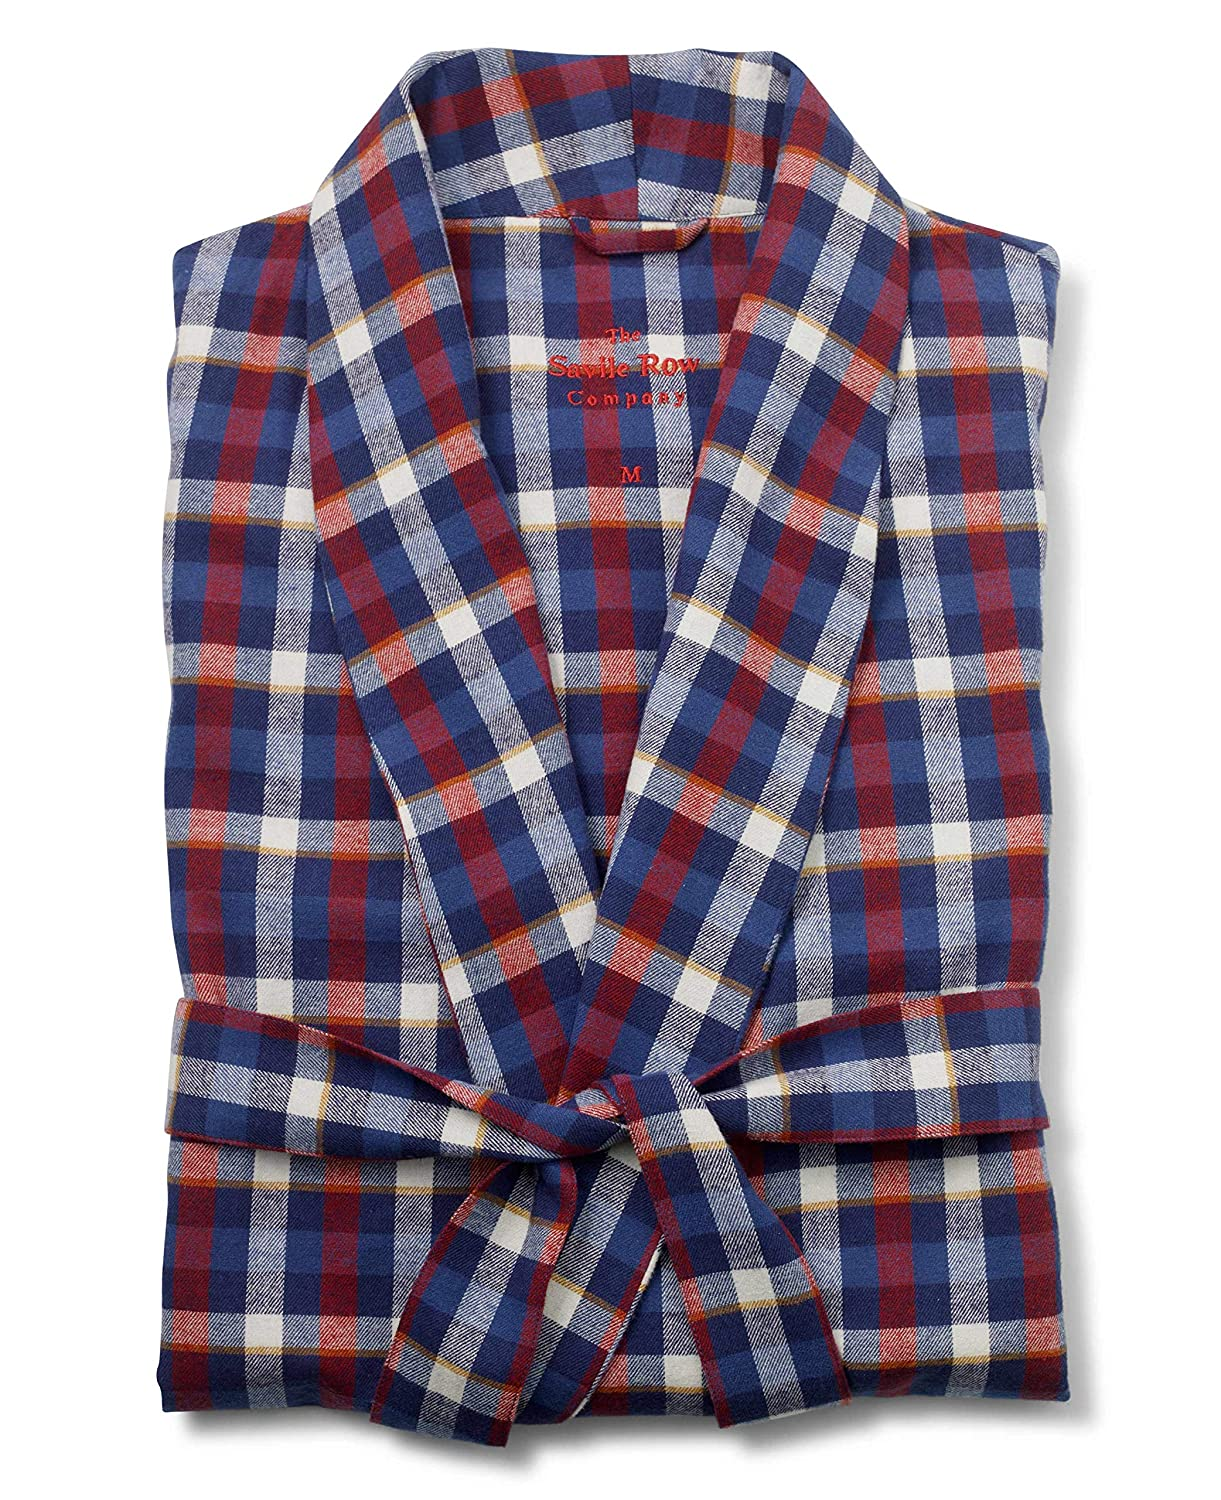 Savile Row Company Men's Red Blue Tan Brushed Cotton Check Dressing Gown The Savile Row Company London